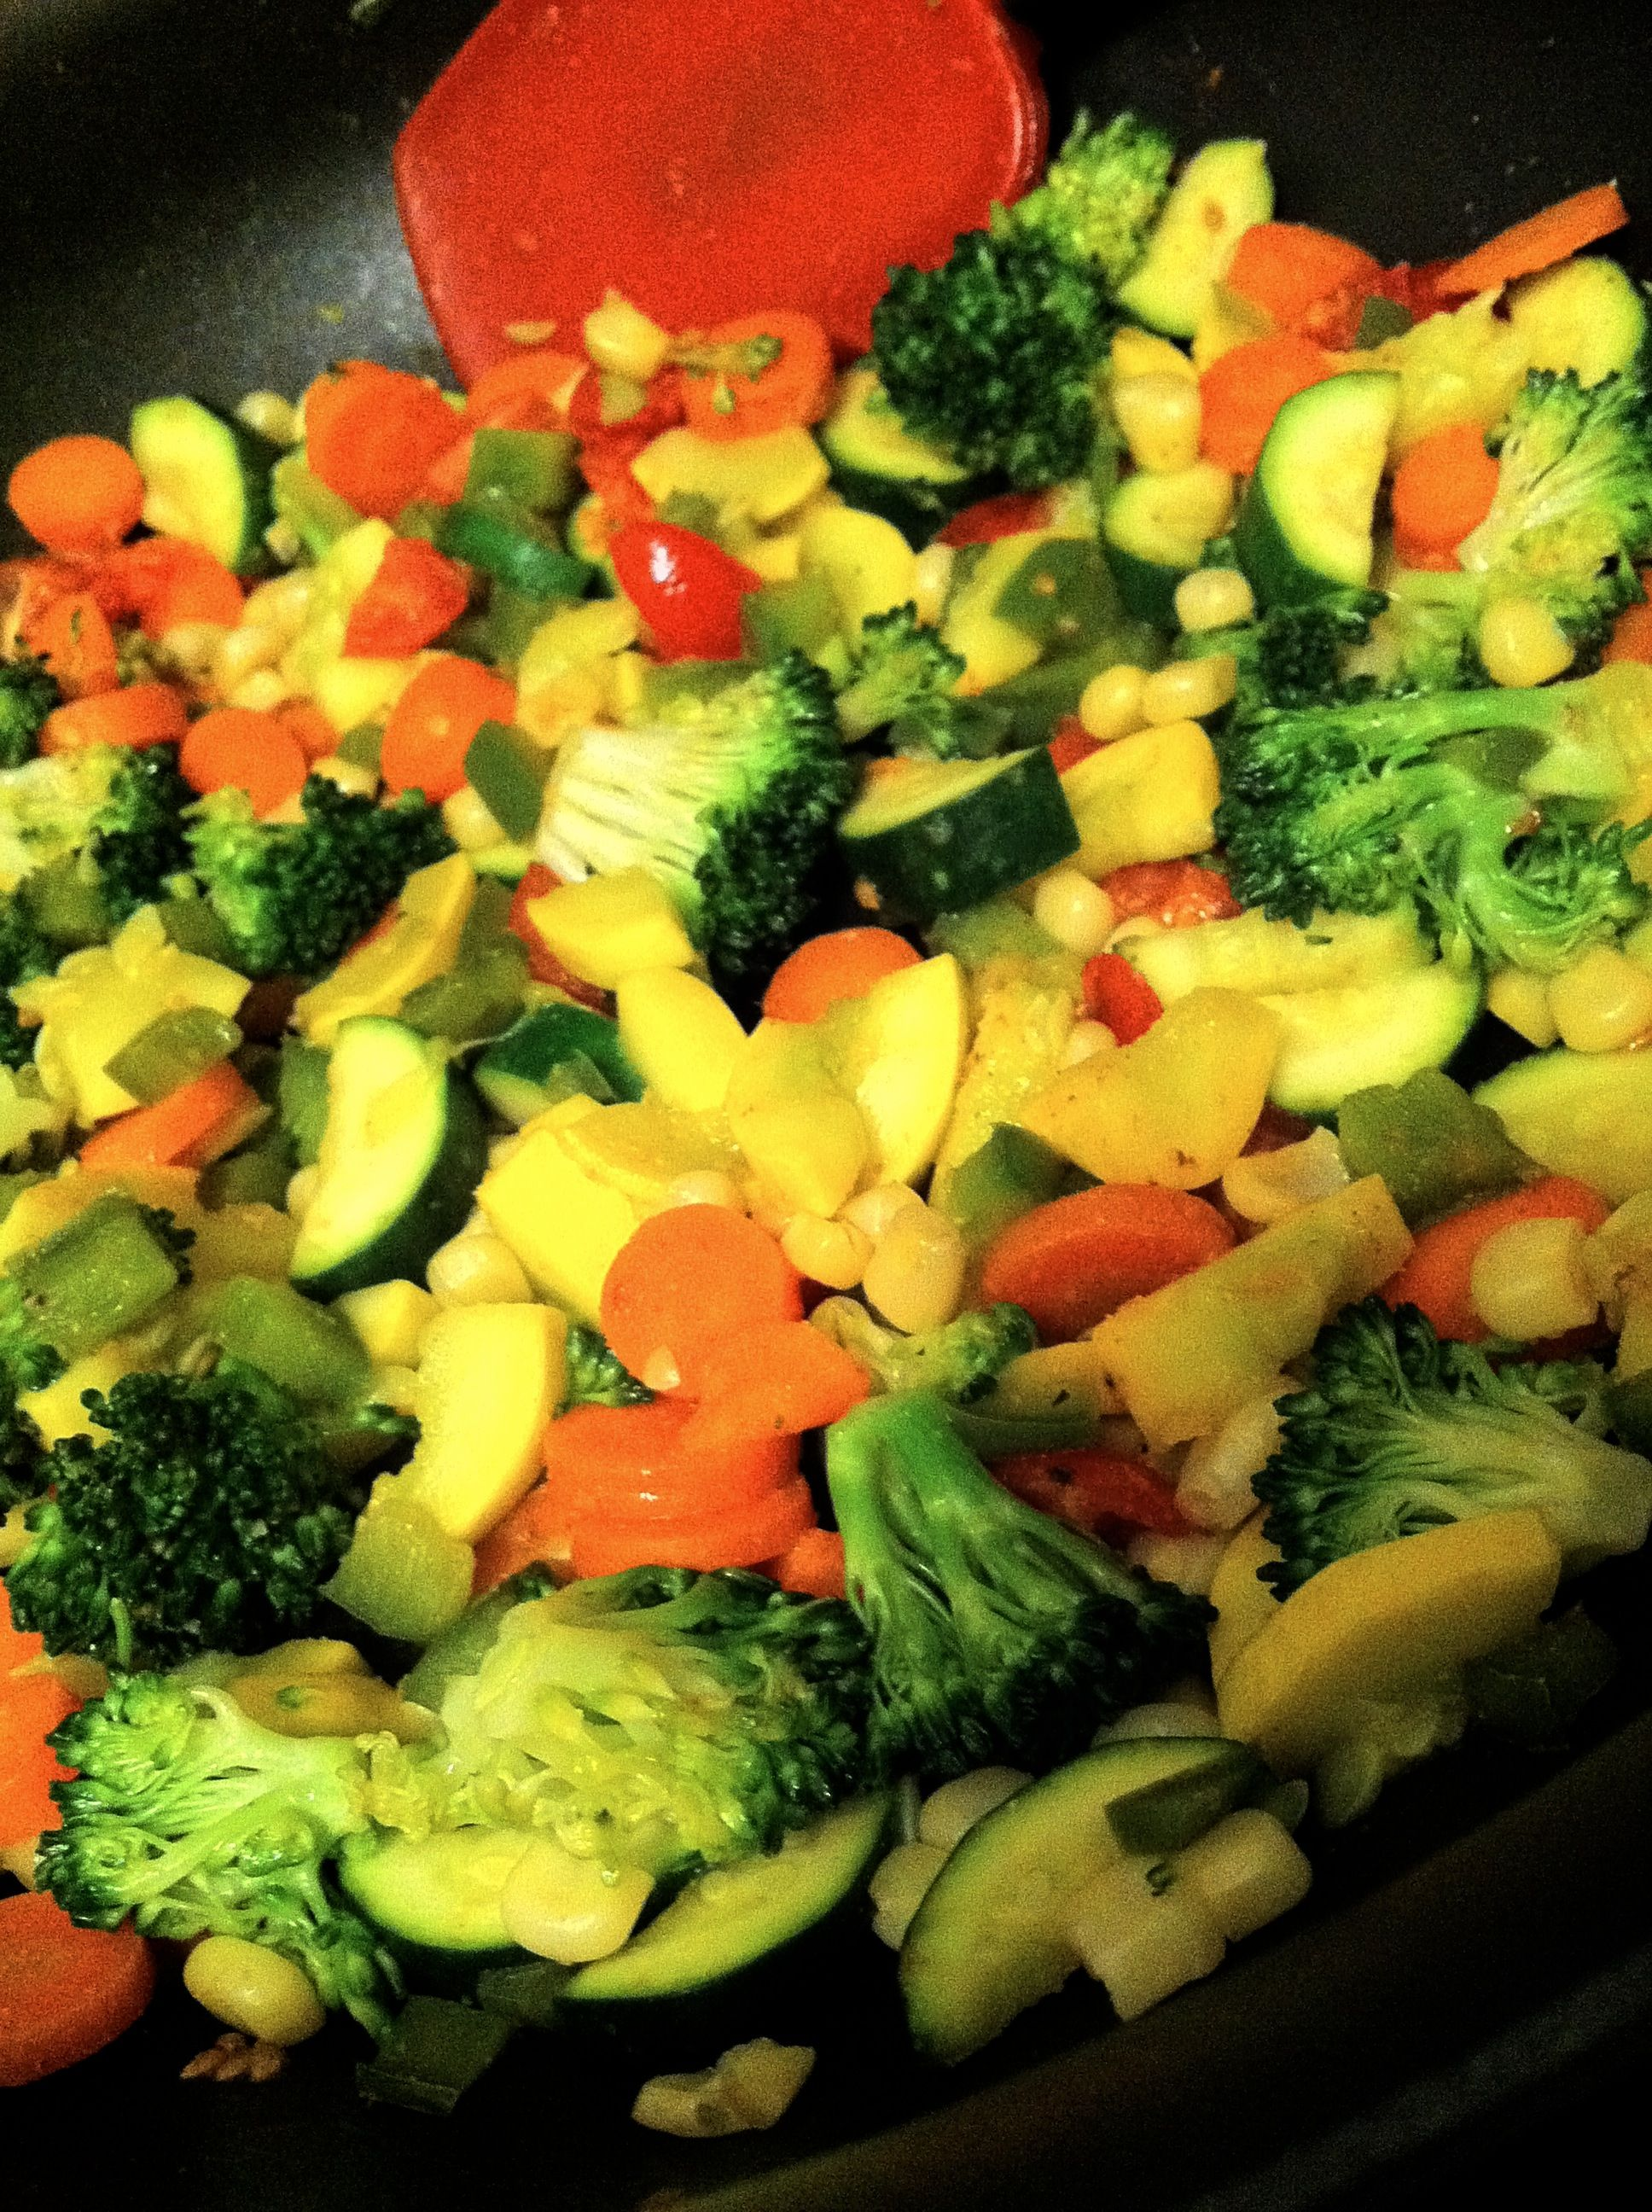 Straight vegetable stir fry - can not get enough of my veggies.